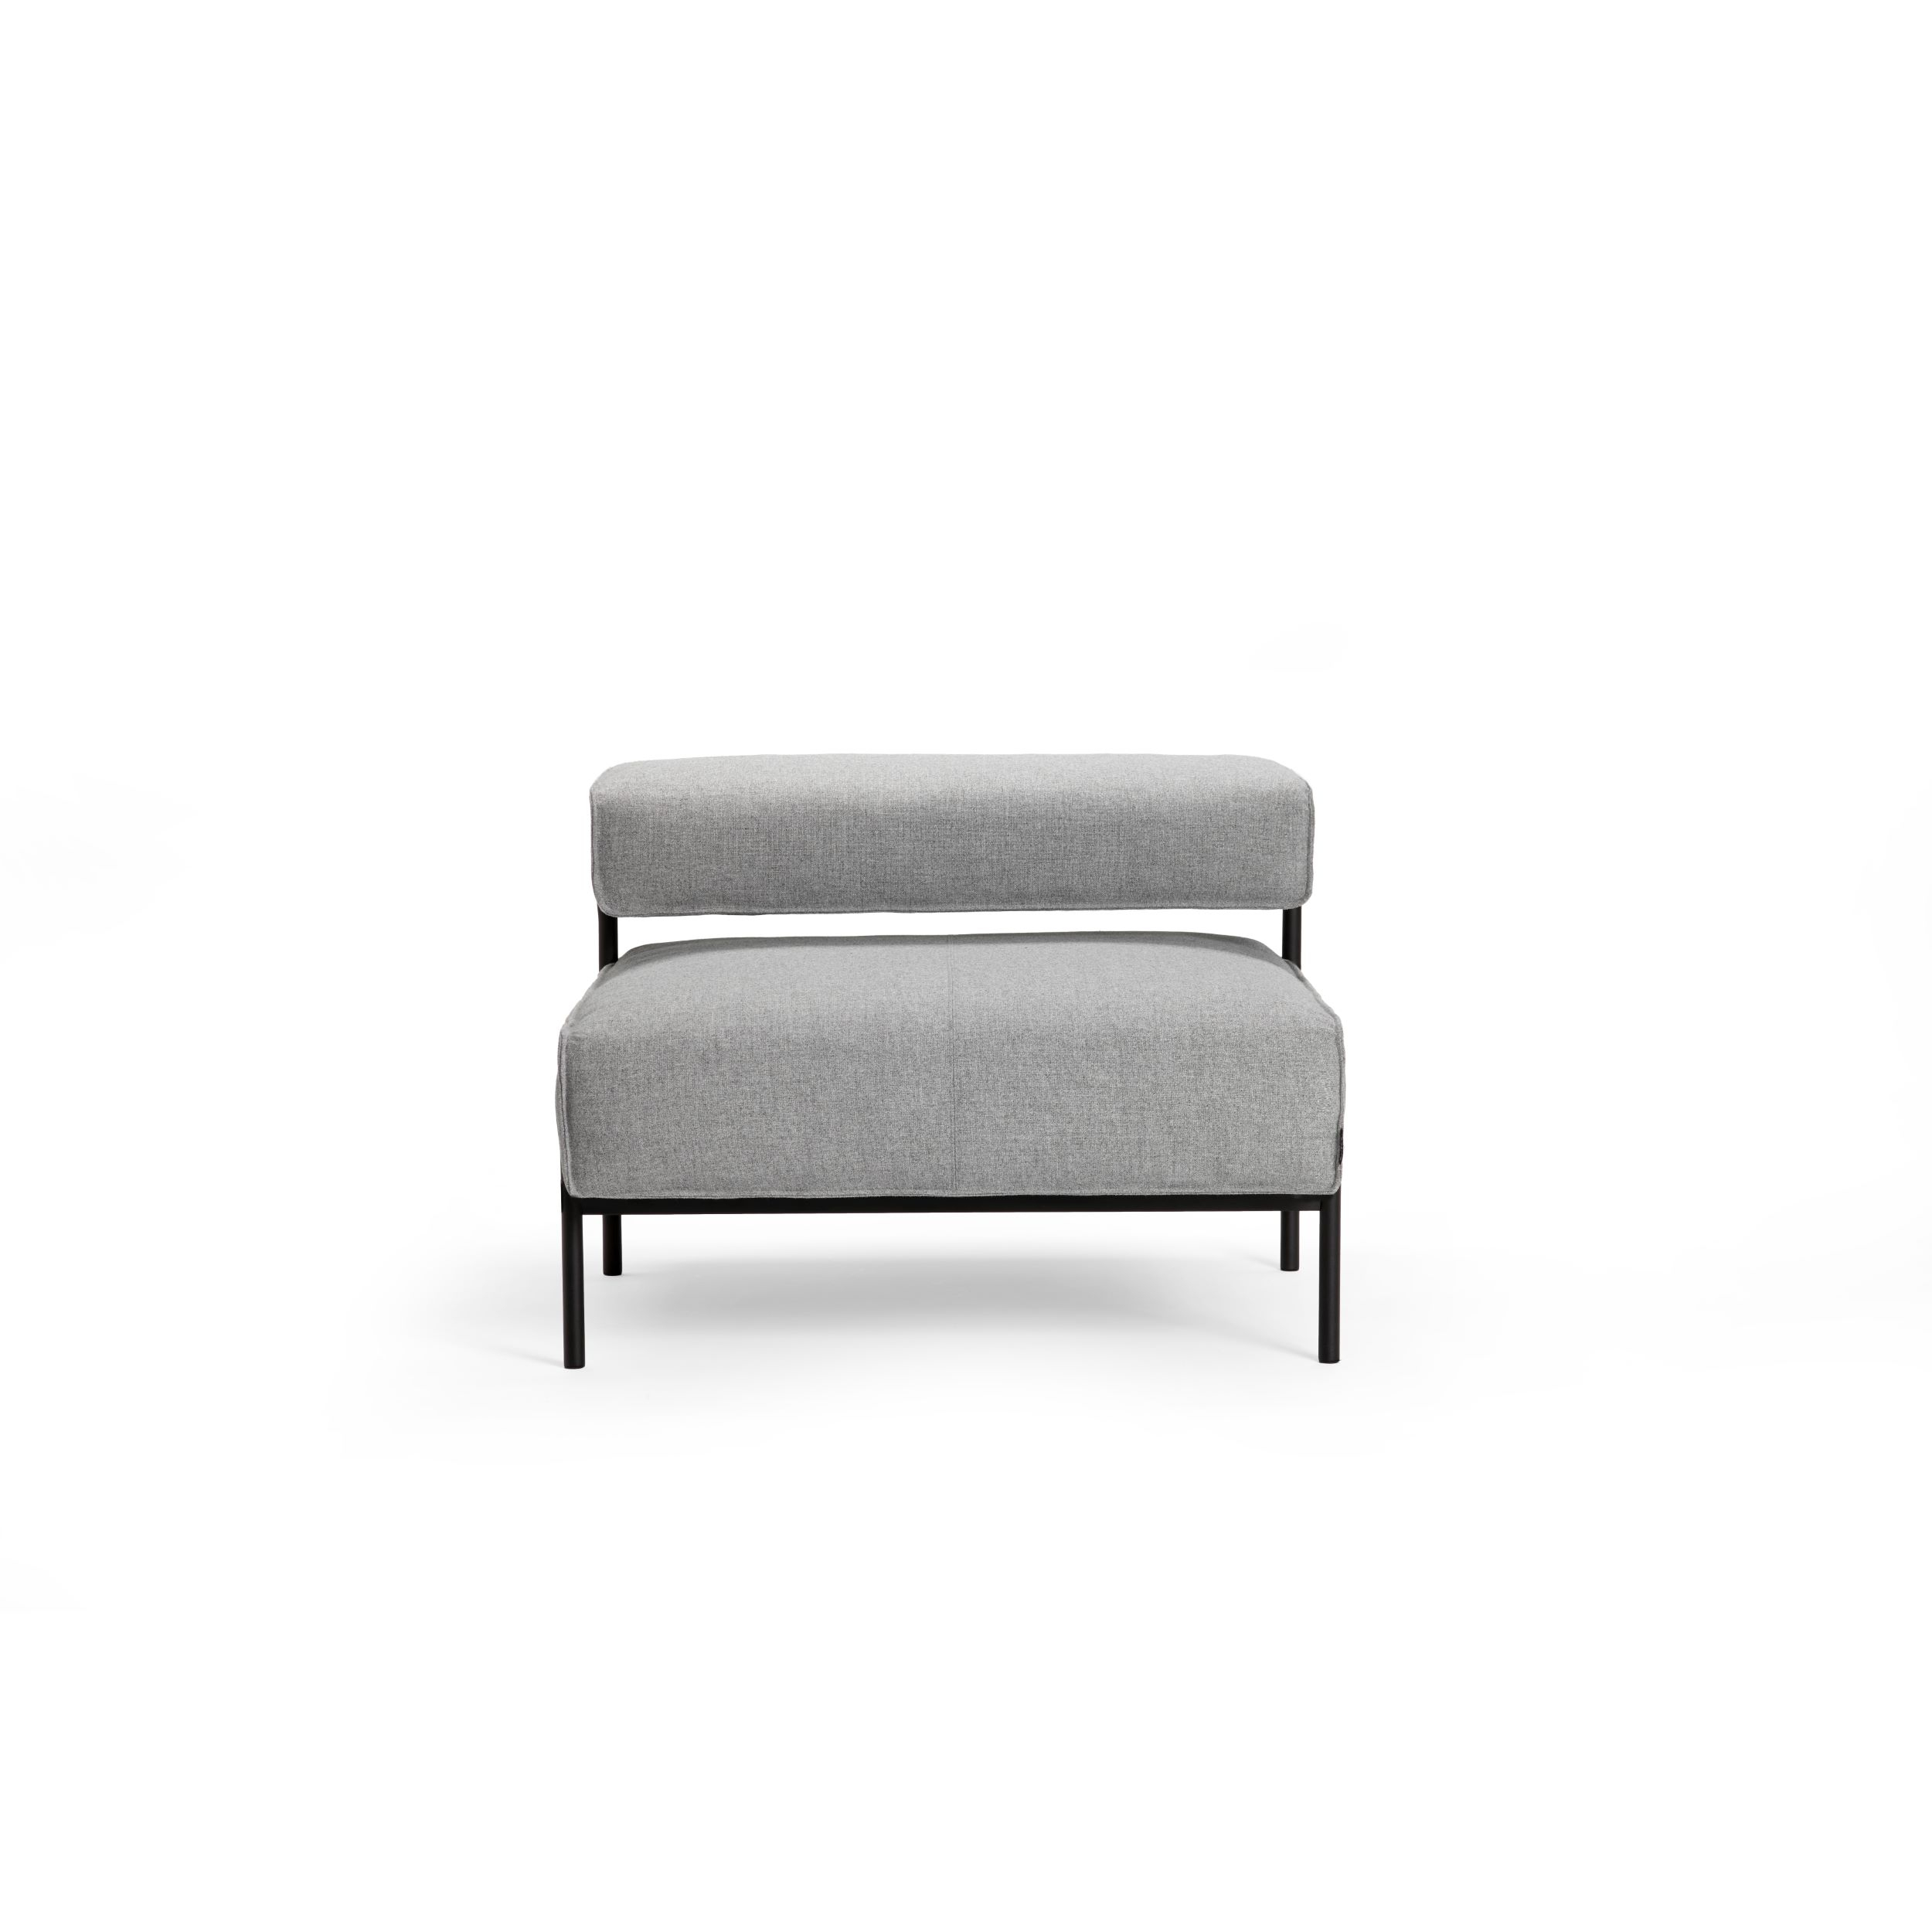 Lucy, B10 | Offecct For Lucy Grey Sofa Chairs (View 4 of 20)